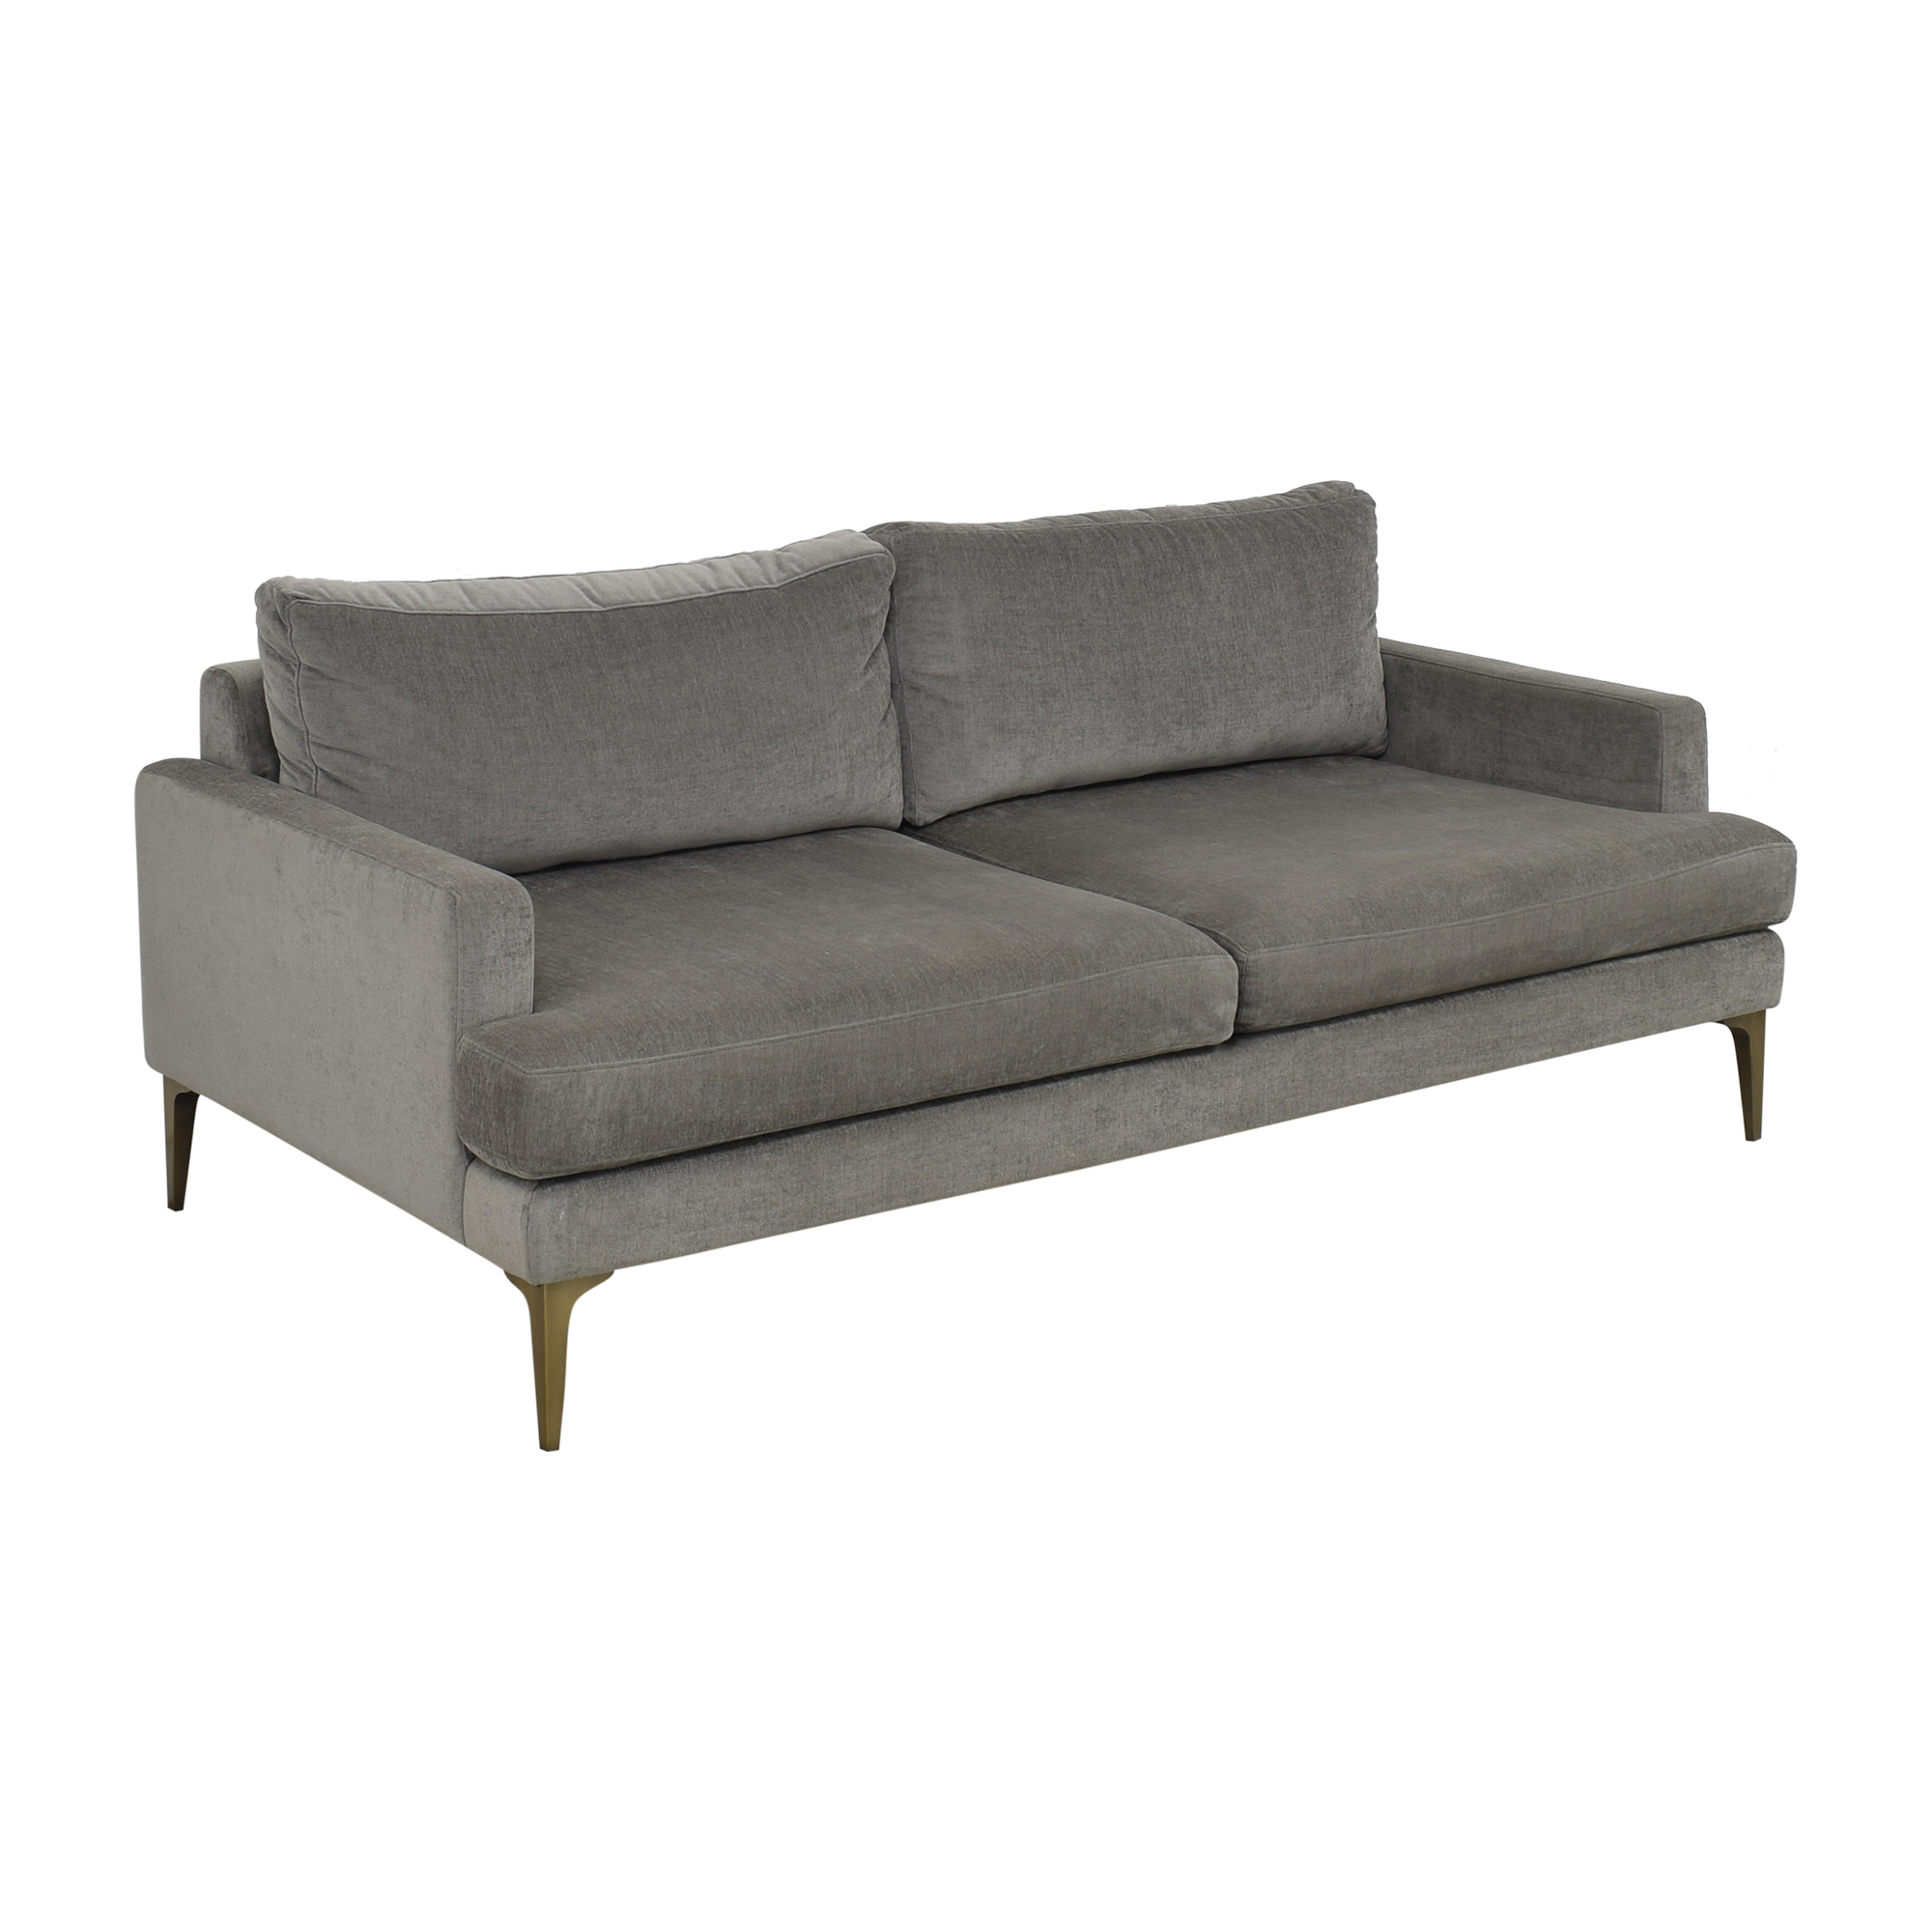 West Elm Andes Sofa West Elm